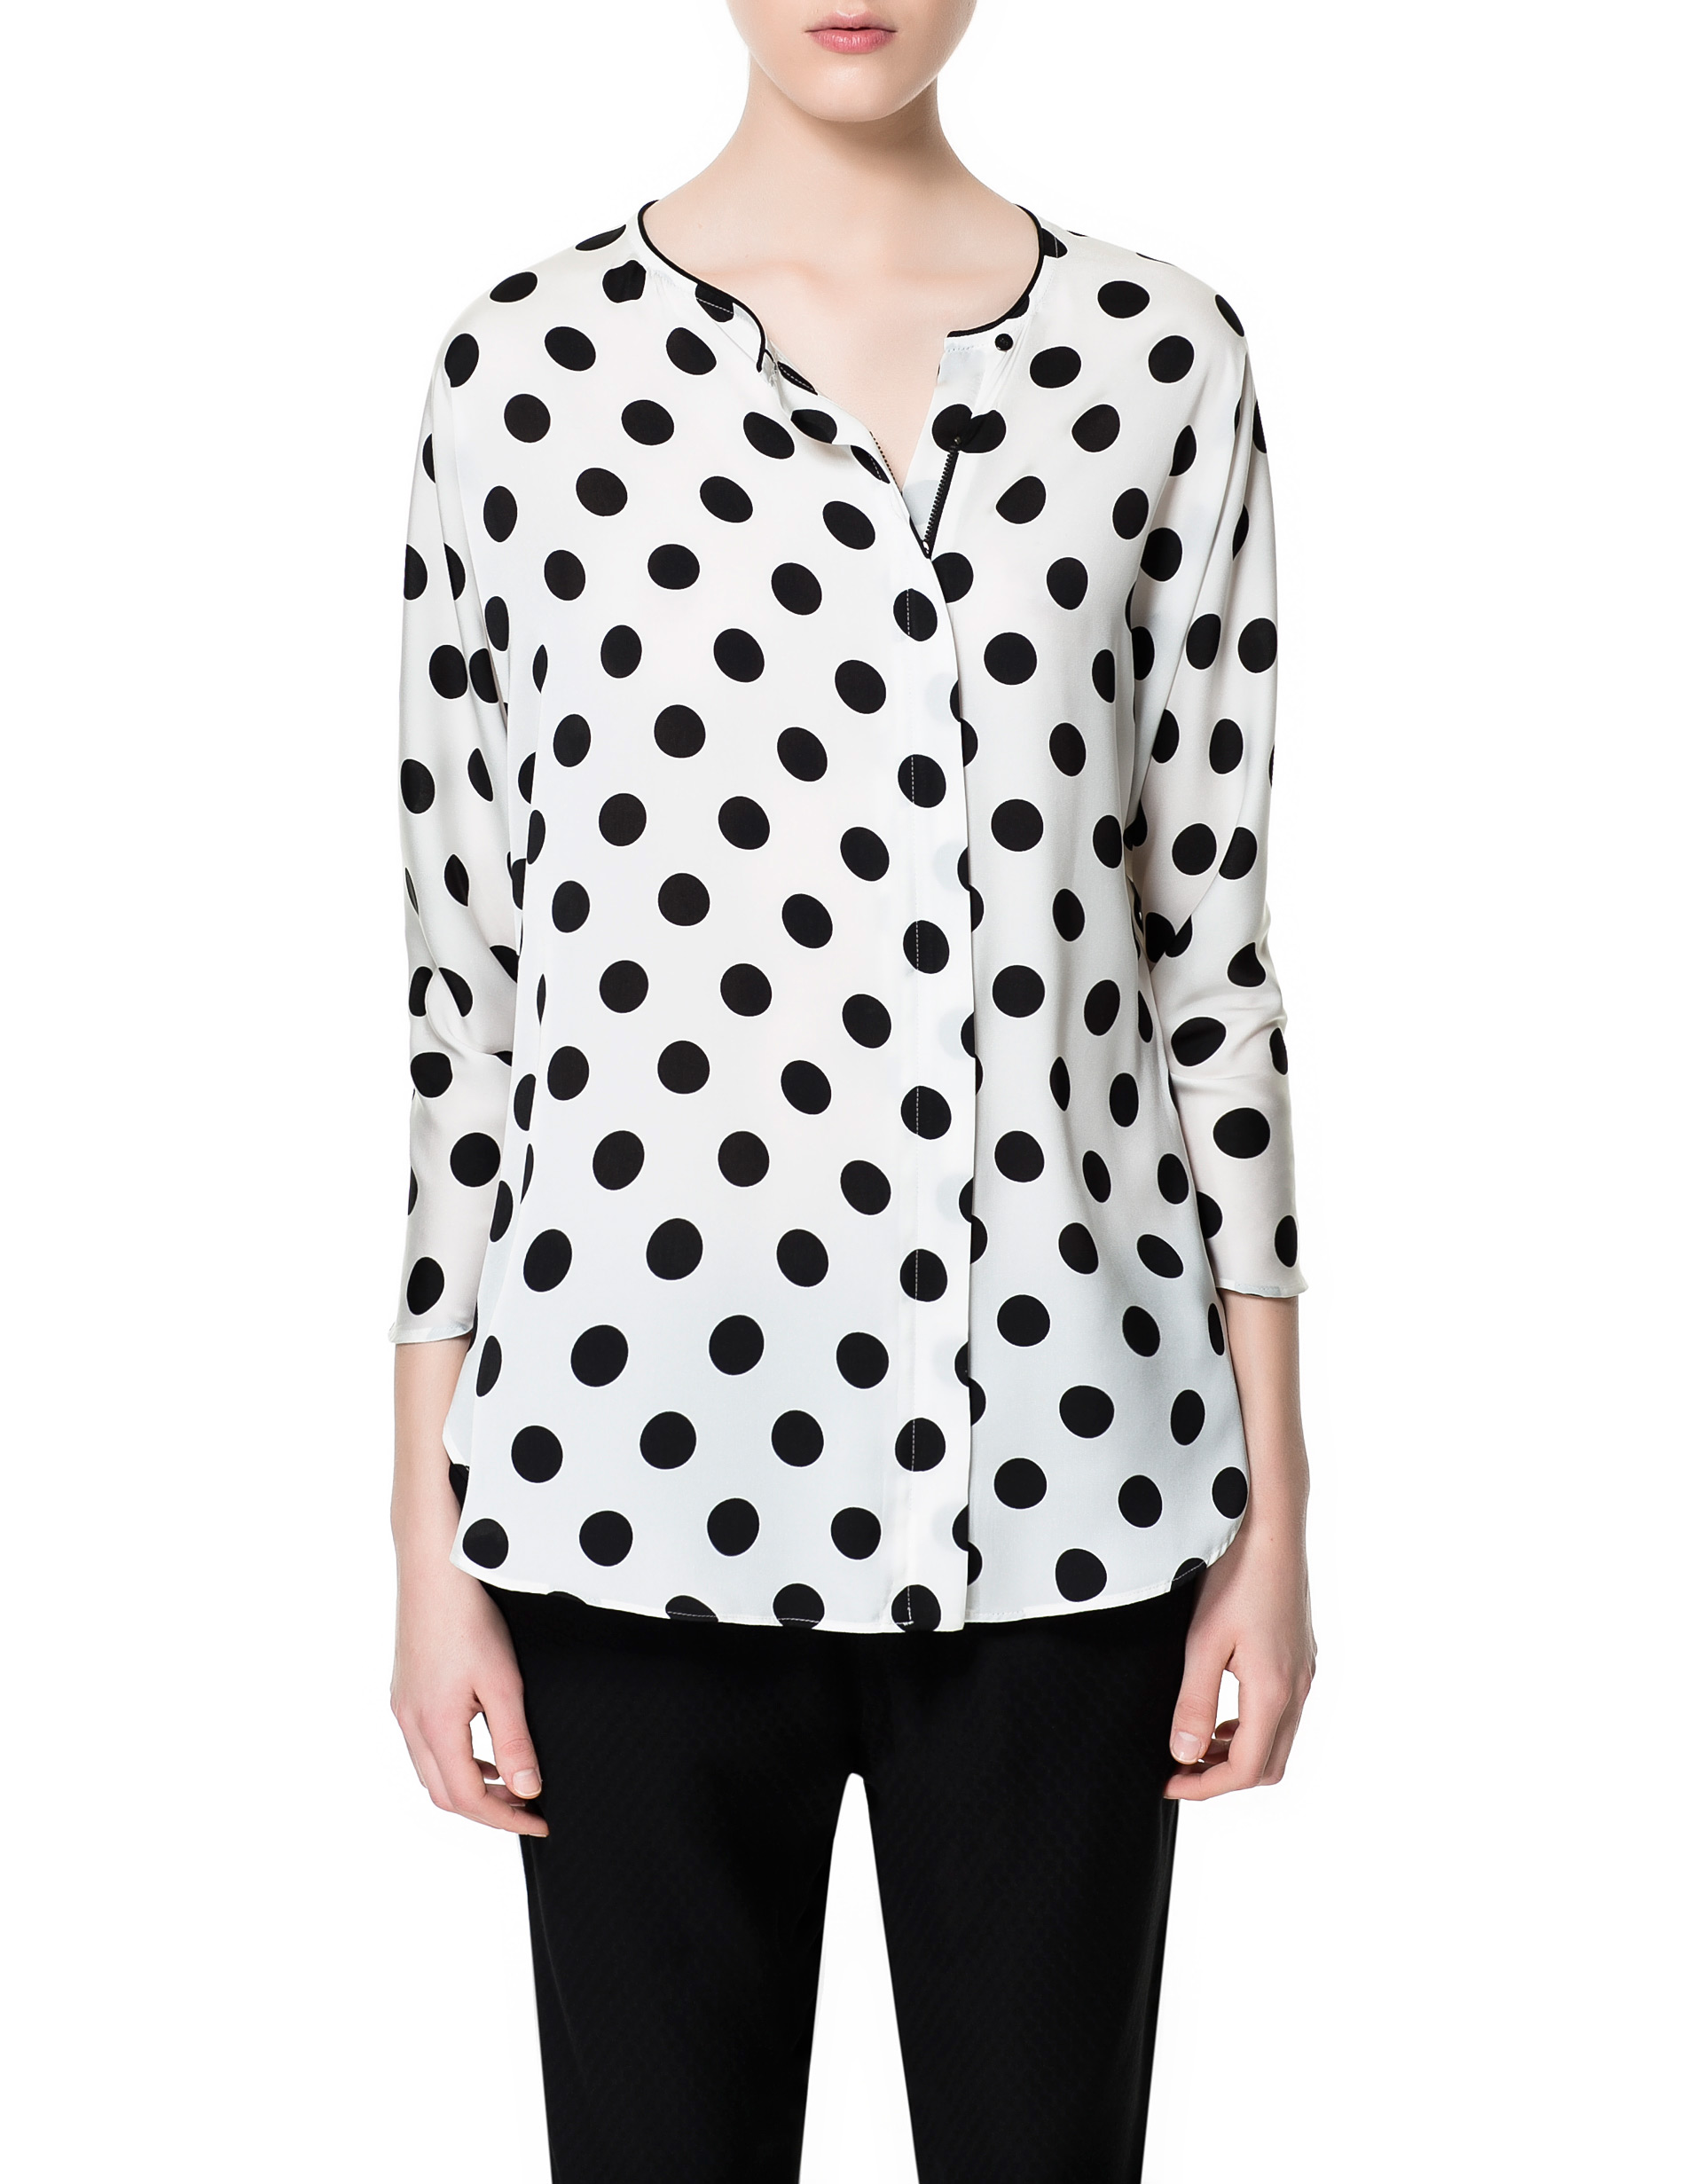 PanACEA (Dot Blouse Polka Black Amelius Dot Adele White Pan-genome Dot White Adele Dot Polka Amelius Blouse Black Atlas with Chromosome Explorer and Analyzer) is an interactive tool for Pan-Genome bloggeri.tk consists of multi-tiered, hierarchical display pages enabling the navigation of both detailed and high-level views of the data to include both core and variable pan-chromosome.